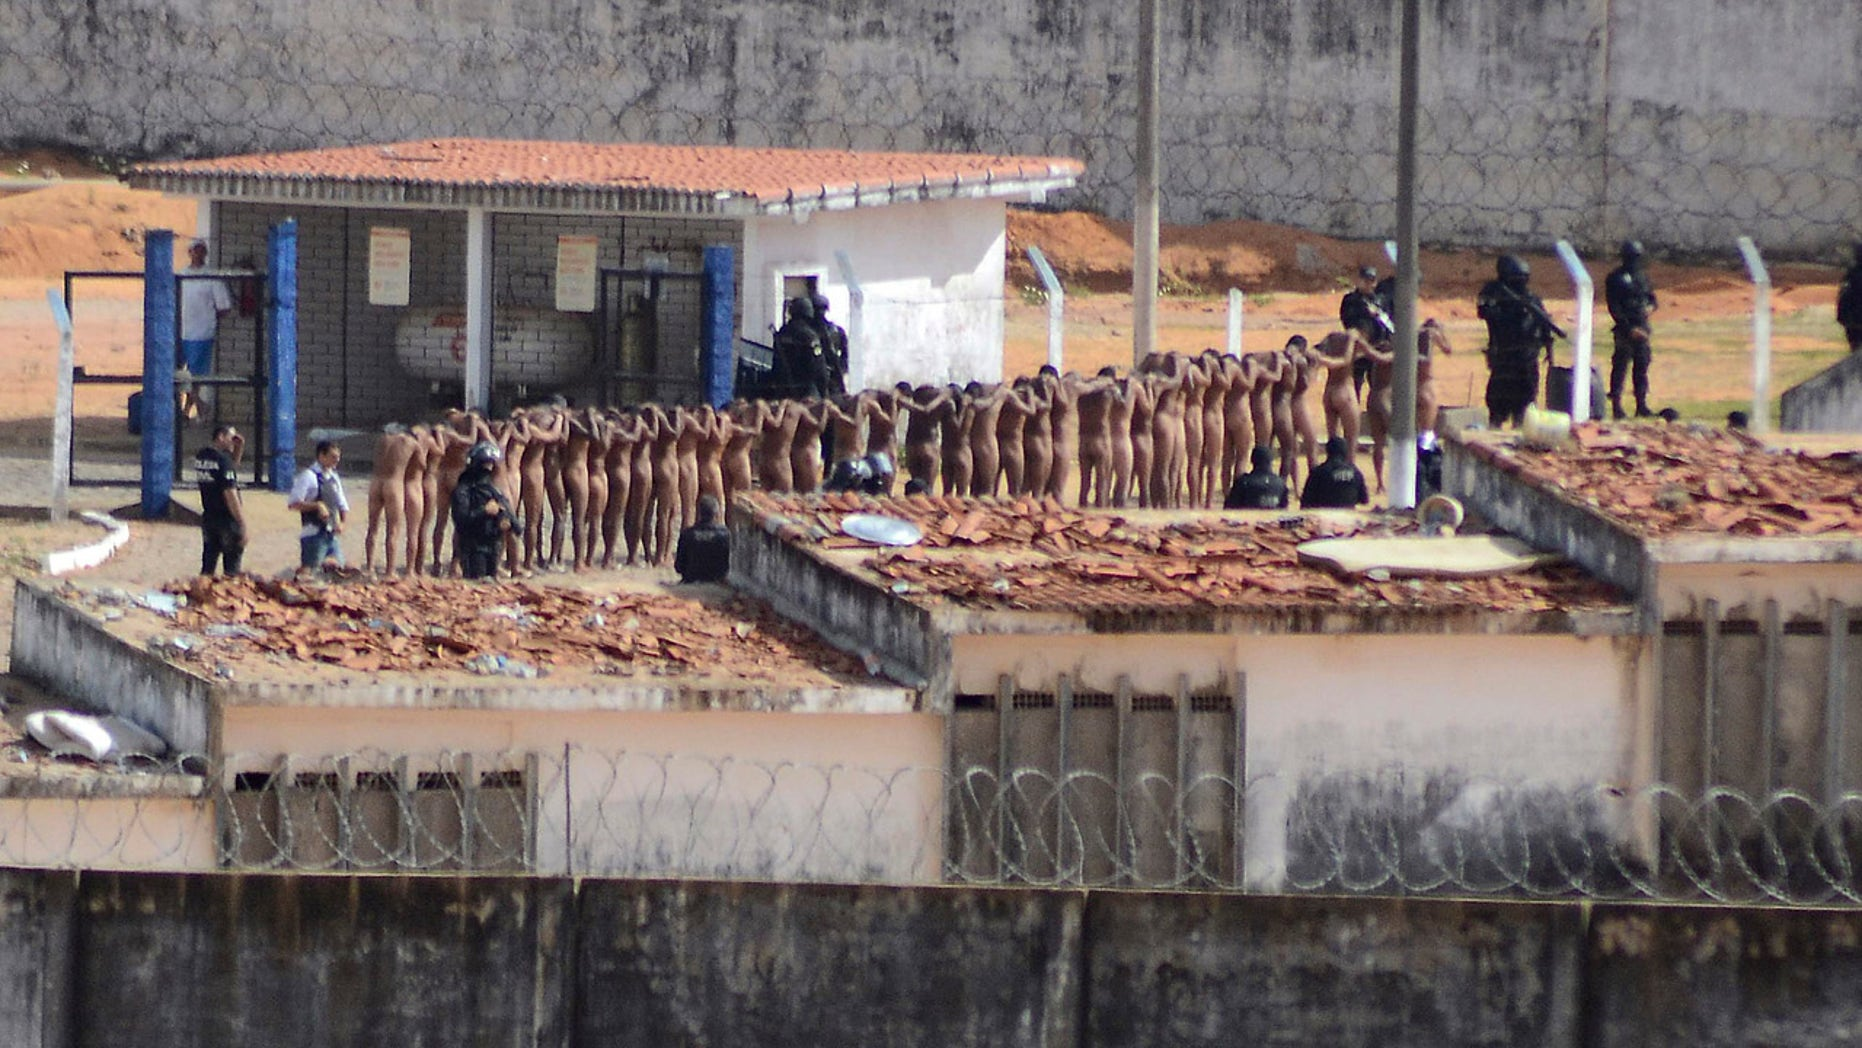 Jan. 15, 2017: Naked inmates stand in line while surrounded by police after a riot at the Alcacuz prison in Nisia Floresta, Rio Grande do Norte state, Brazi.